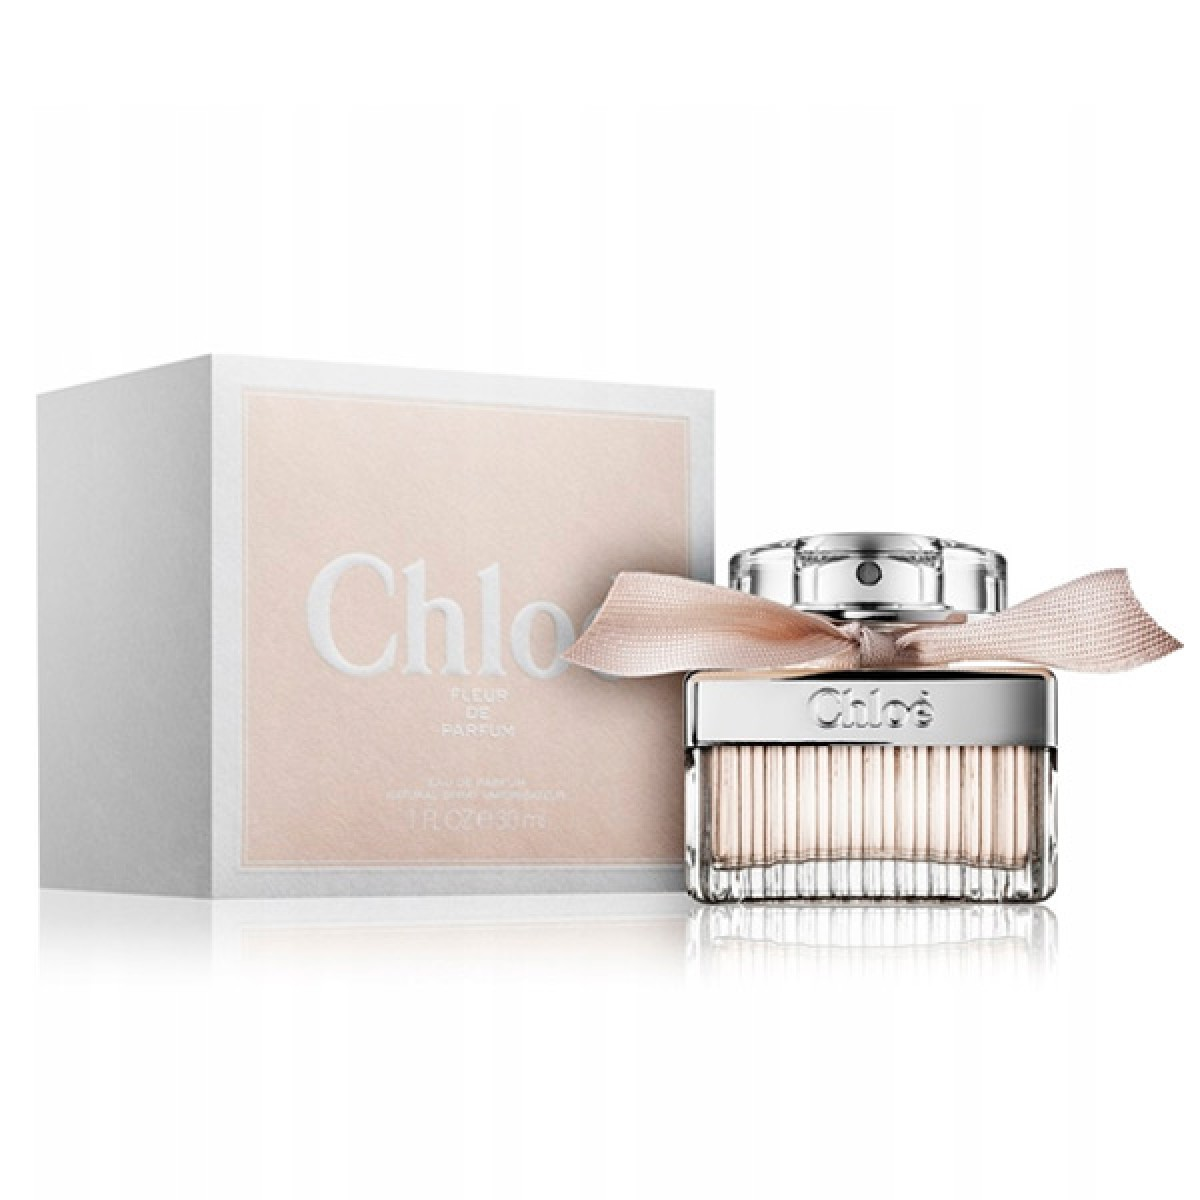 Dameparfume Fleur De Parfum Chloe EDP - Kapacitet: 50 ml